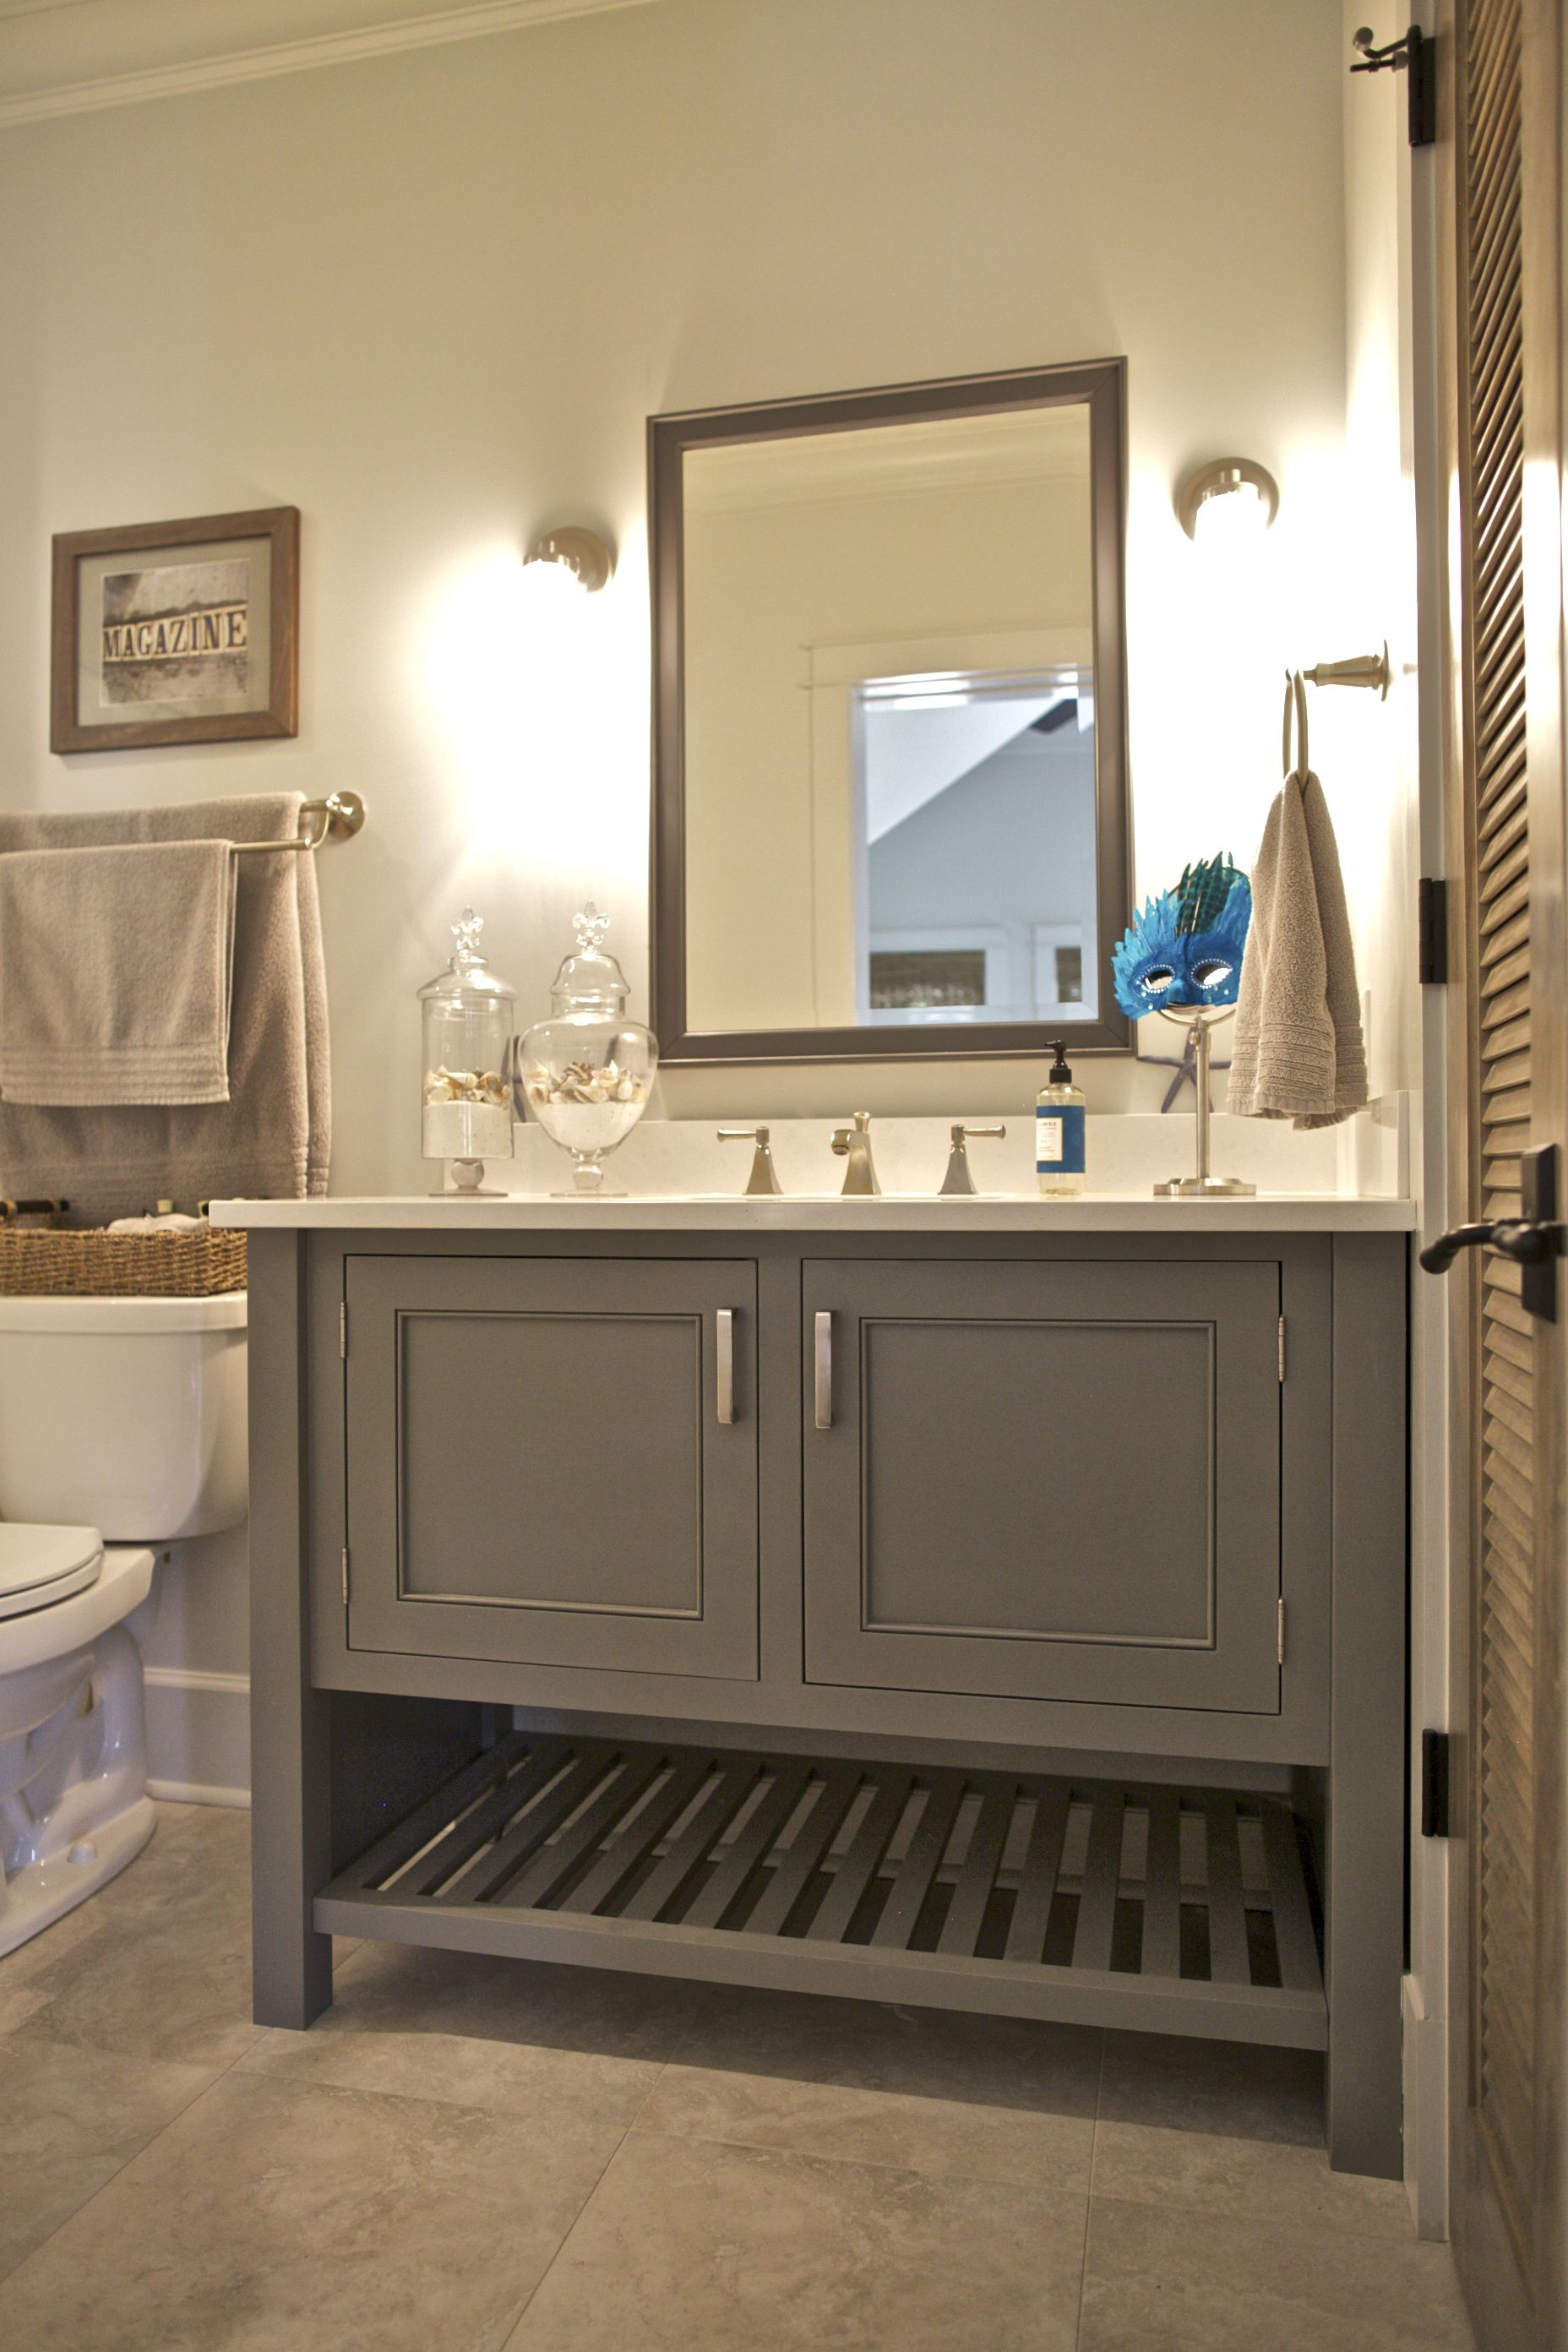 This bathroom features a painted maple inset cabinet vanity in a popular  warm gray color.